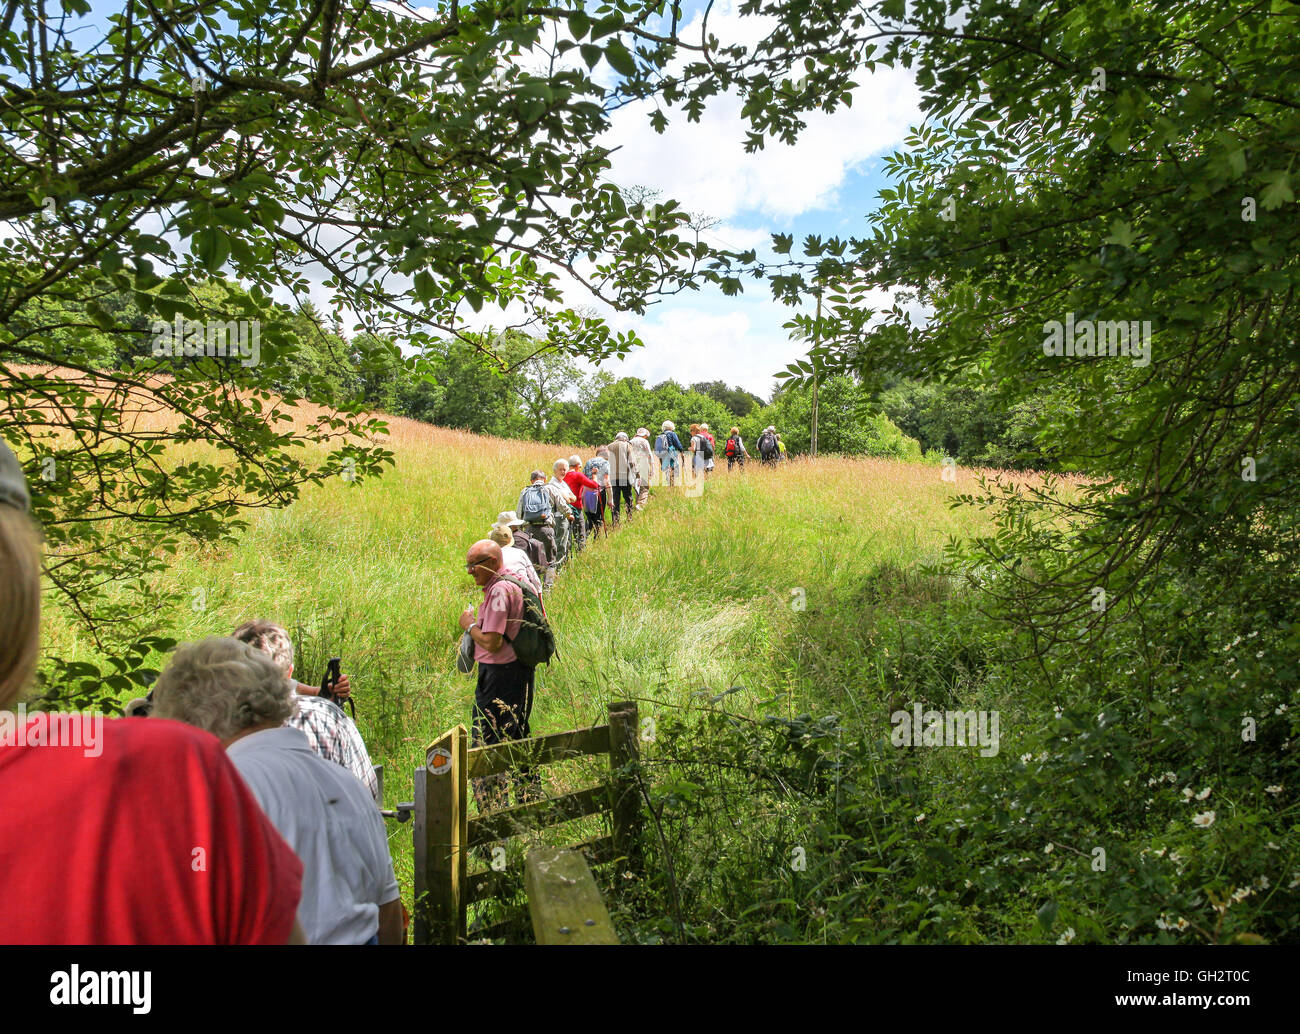 a-line-of-walkers-on-an-organised-walk-across-a-field-in-the-countryside-GH2T0C.jpg